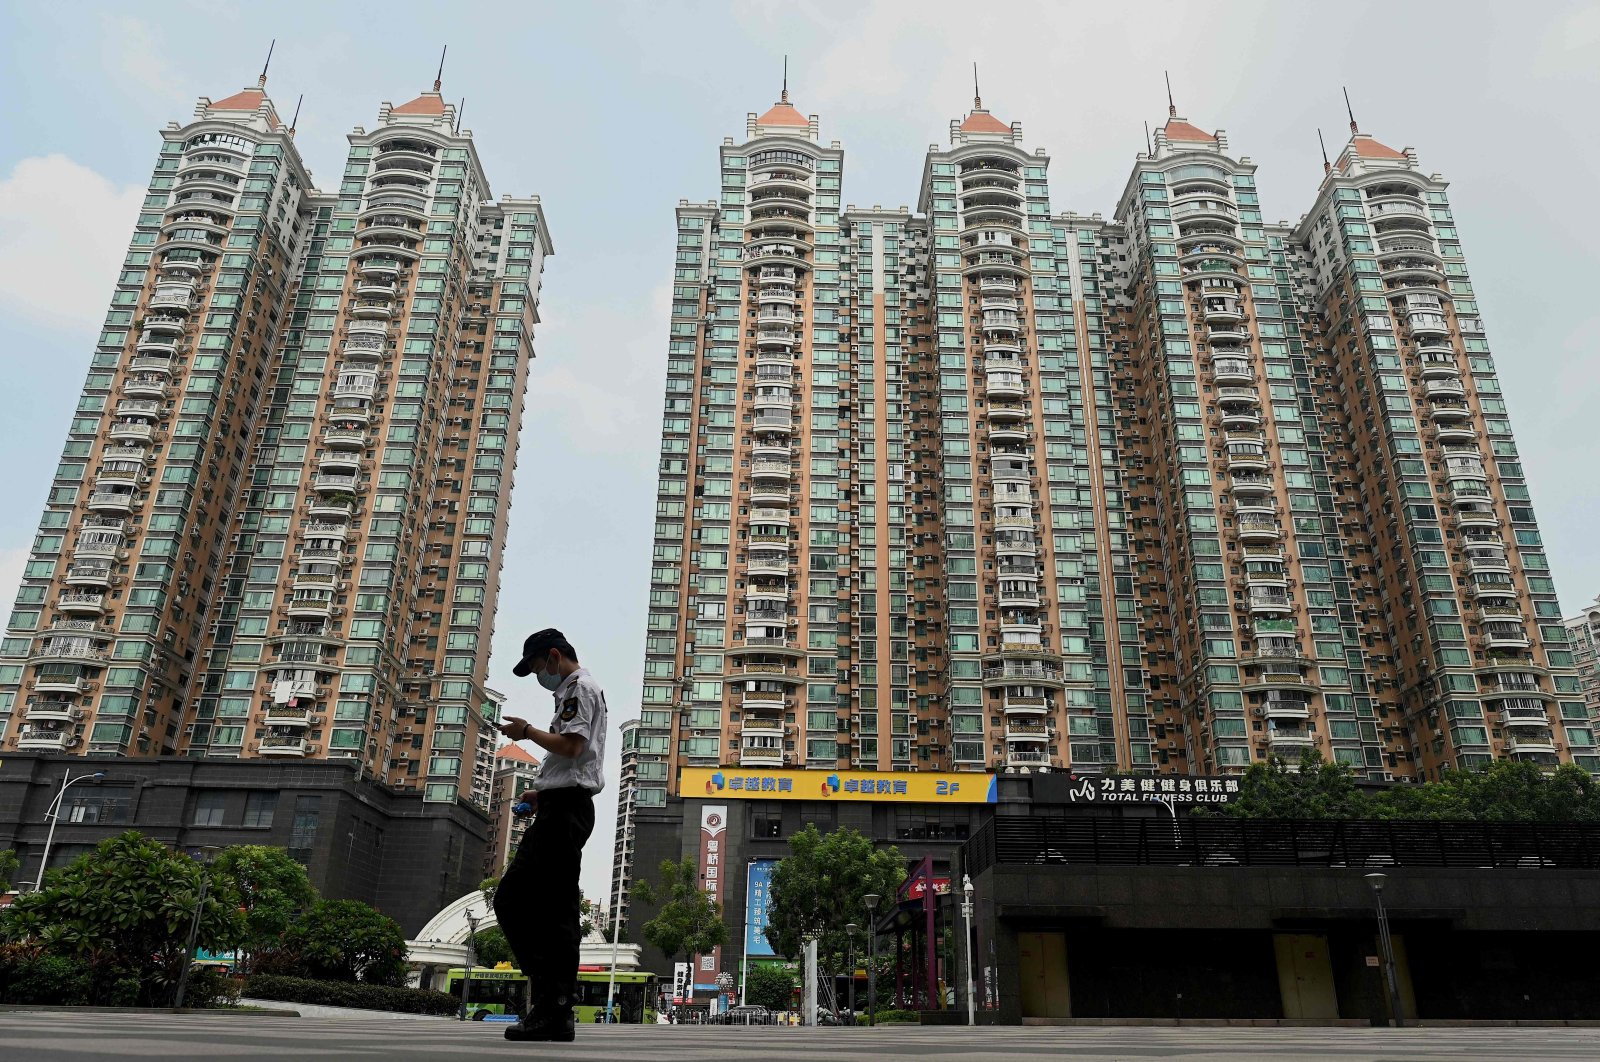 A man walks past a housing complex by Chinese property developer Evergrande in Guangzhou, in China's southern Guangdong province, Sept. 17, 2021. (AFP Photo)